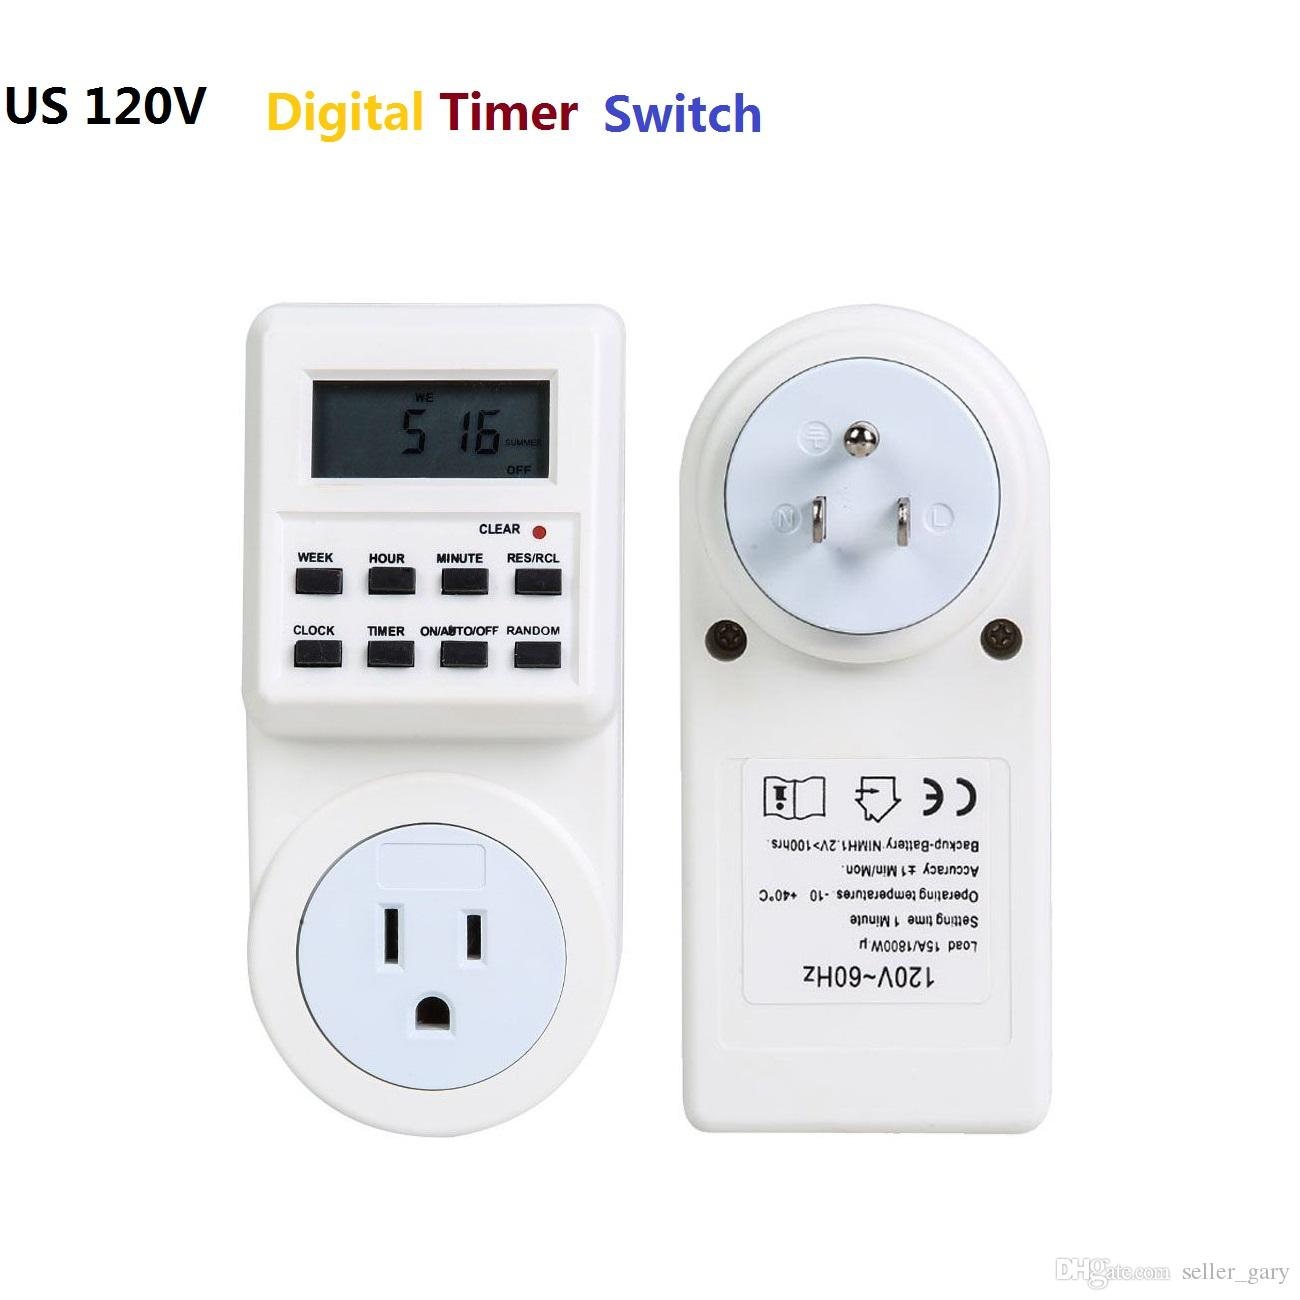 Discount Digital Timer Switch Us 120v 1800w Smart Home Lcd Screen ...